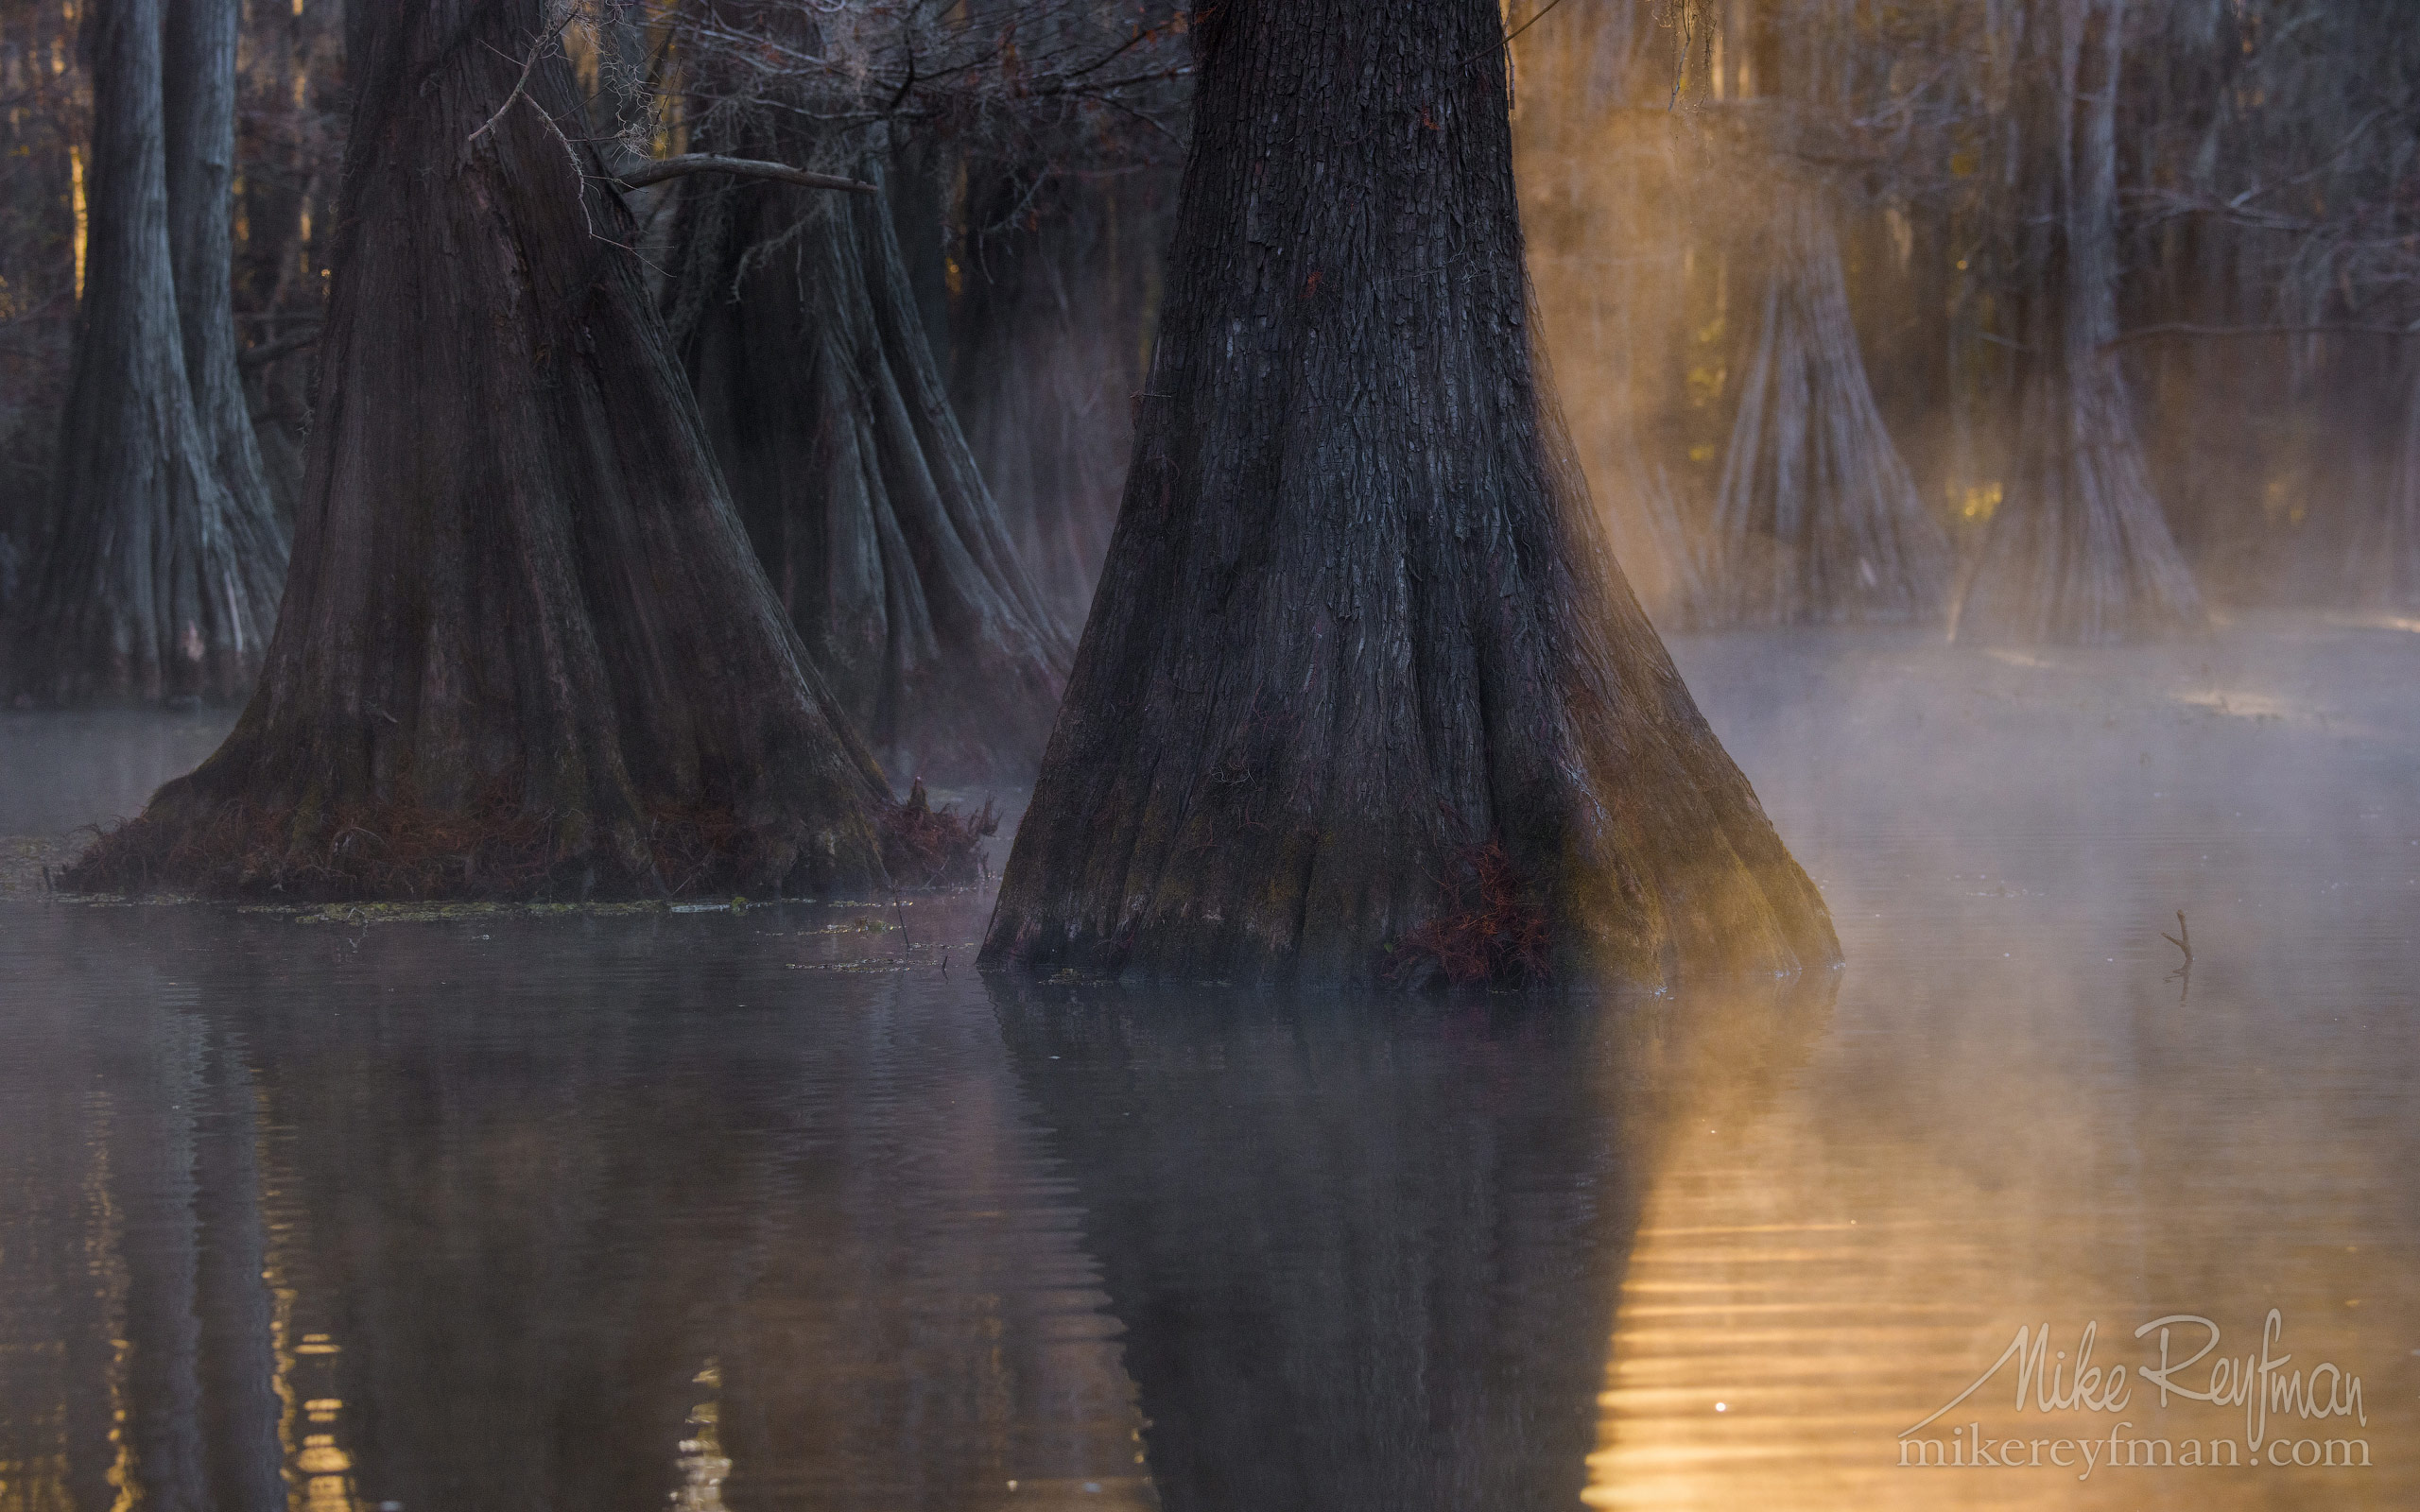 Bald Cypress trees in the swamp. Foggy morning on Caddo Lake, Texas, US 039-LT1-50A3404.jpg - Bold Cypress and Tupelo Trees in the swamps of Atchafalaya River Basin. Caddo, Martin and Fousse Lakes. Texas/Louisiana, USA. - Mike Reyfman Photography